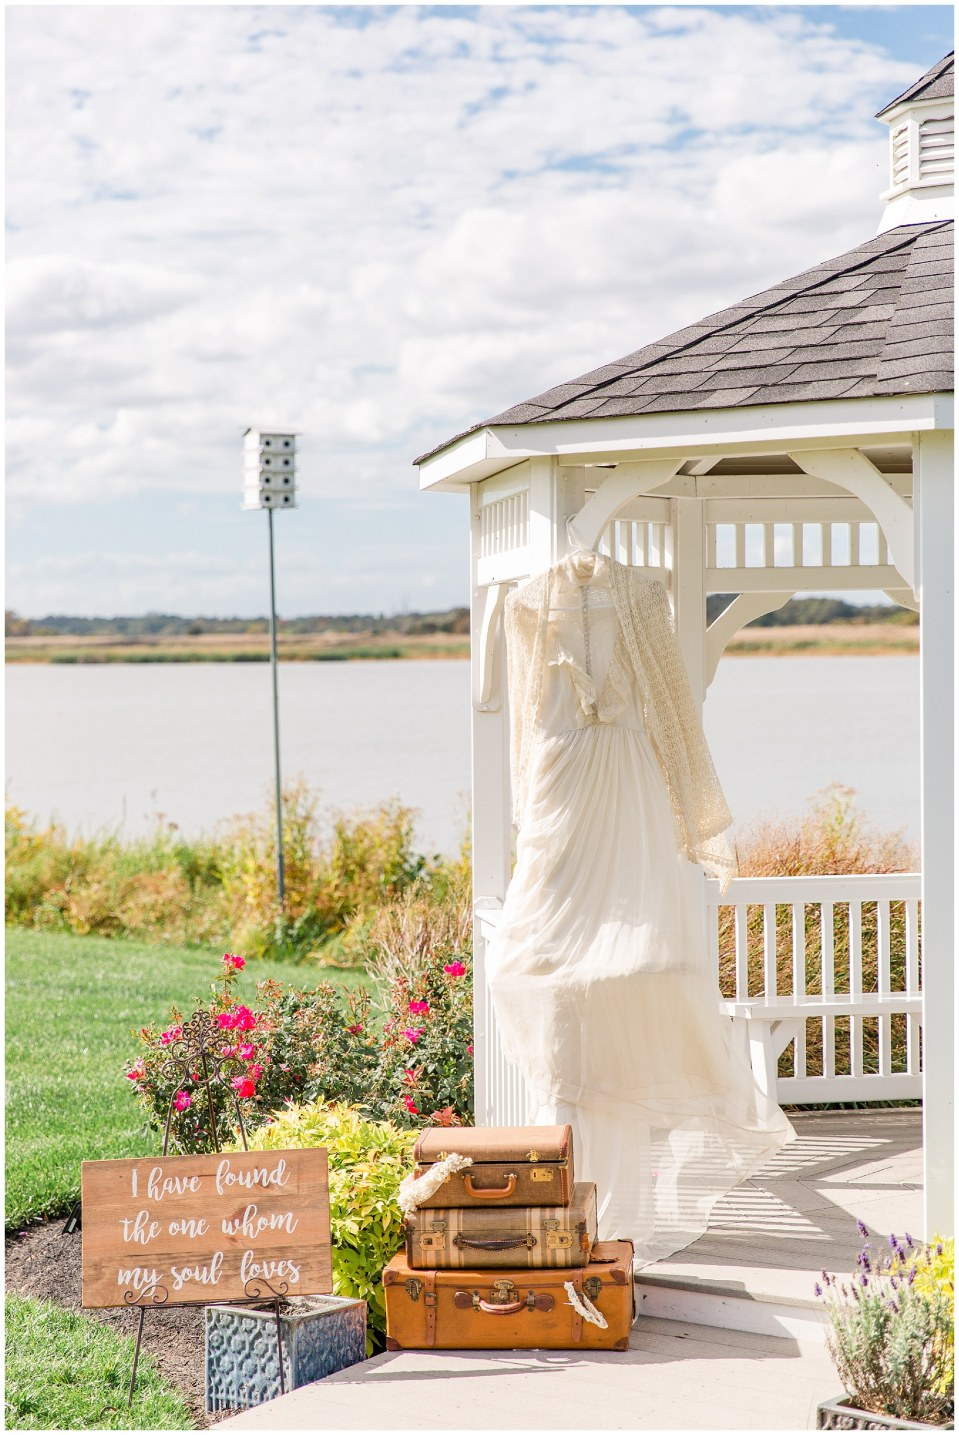 Cody & Hali's Boho Chic Barn Wedding at Thousand Acre Farms in Delaware Photos_0006.jpg